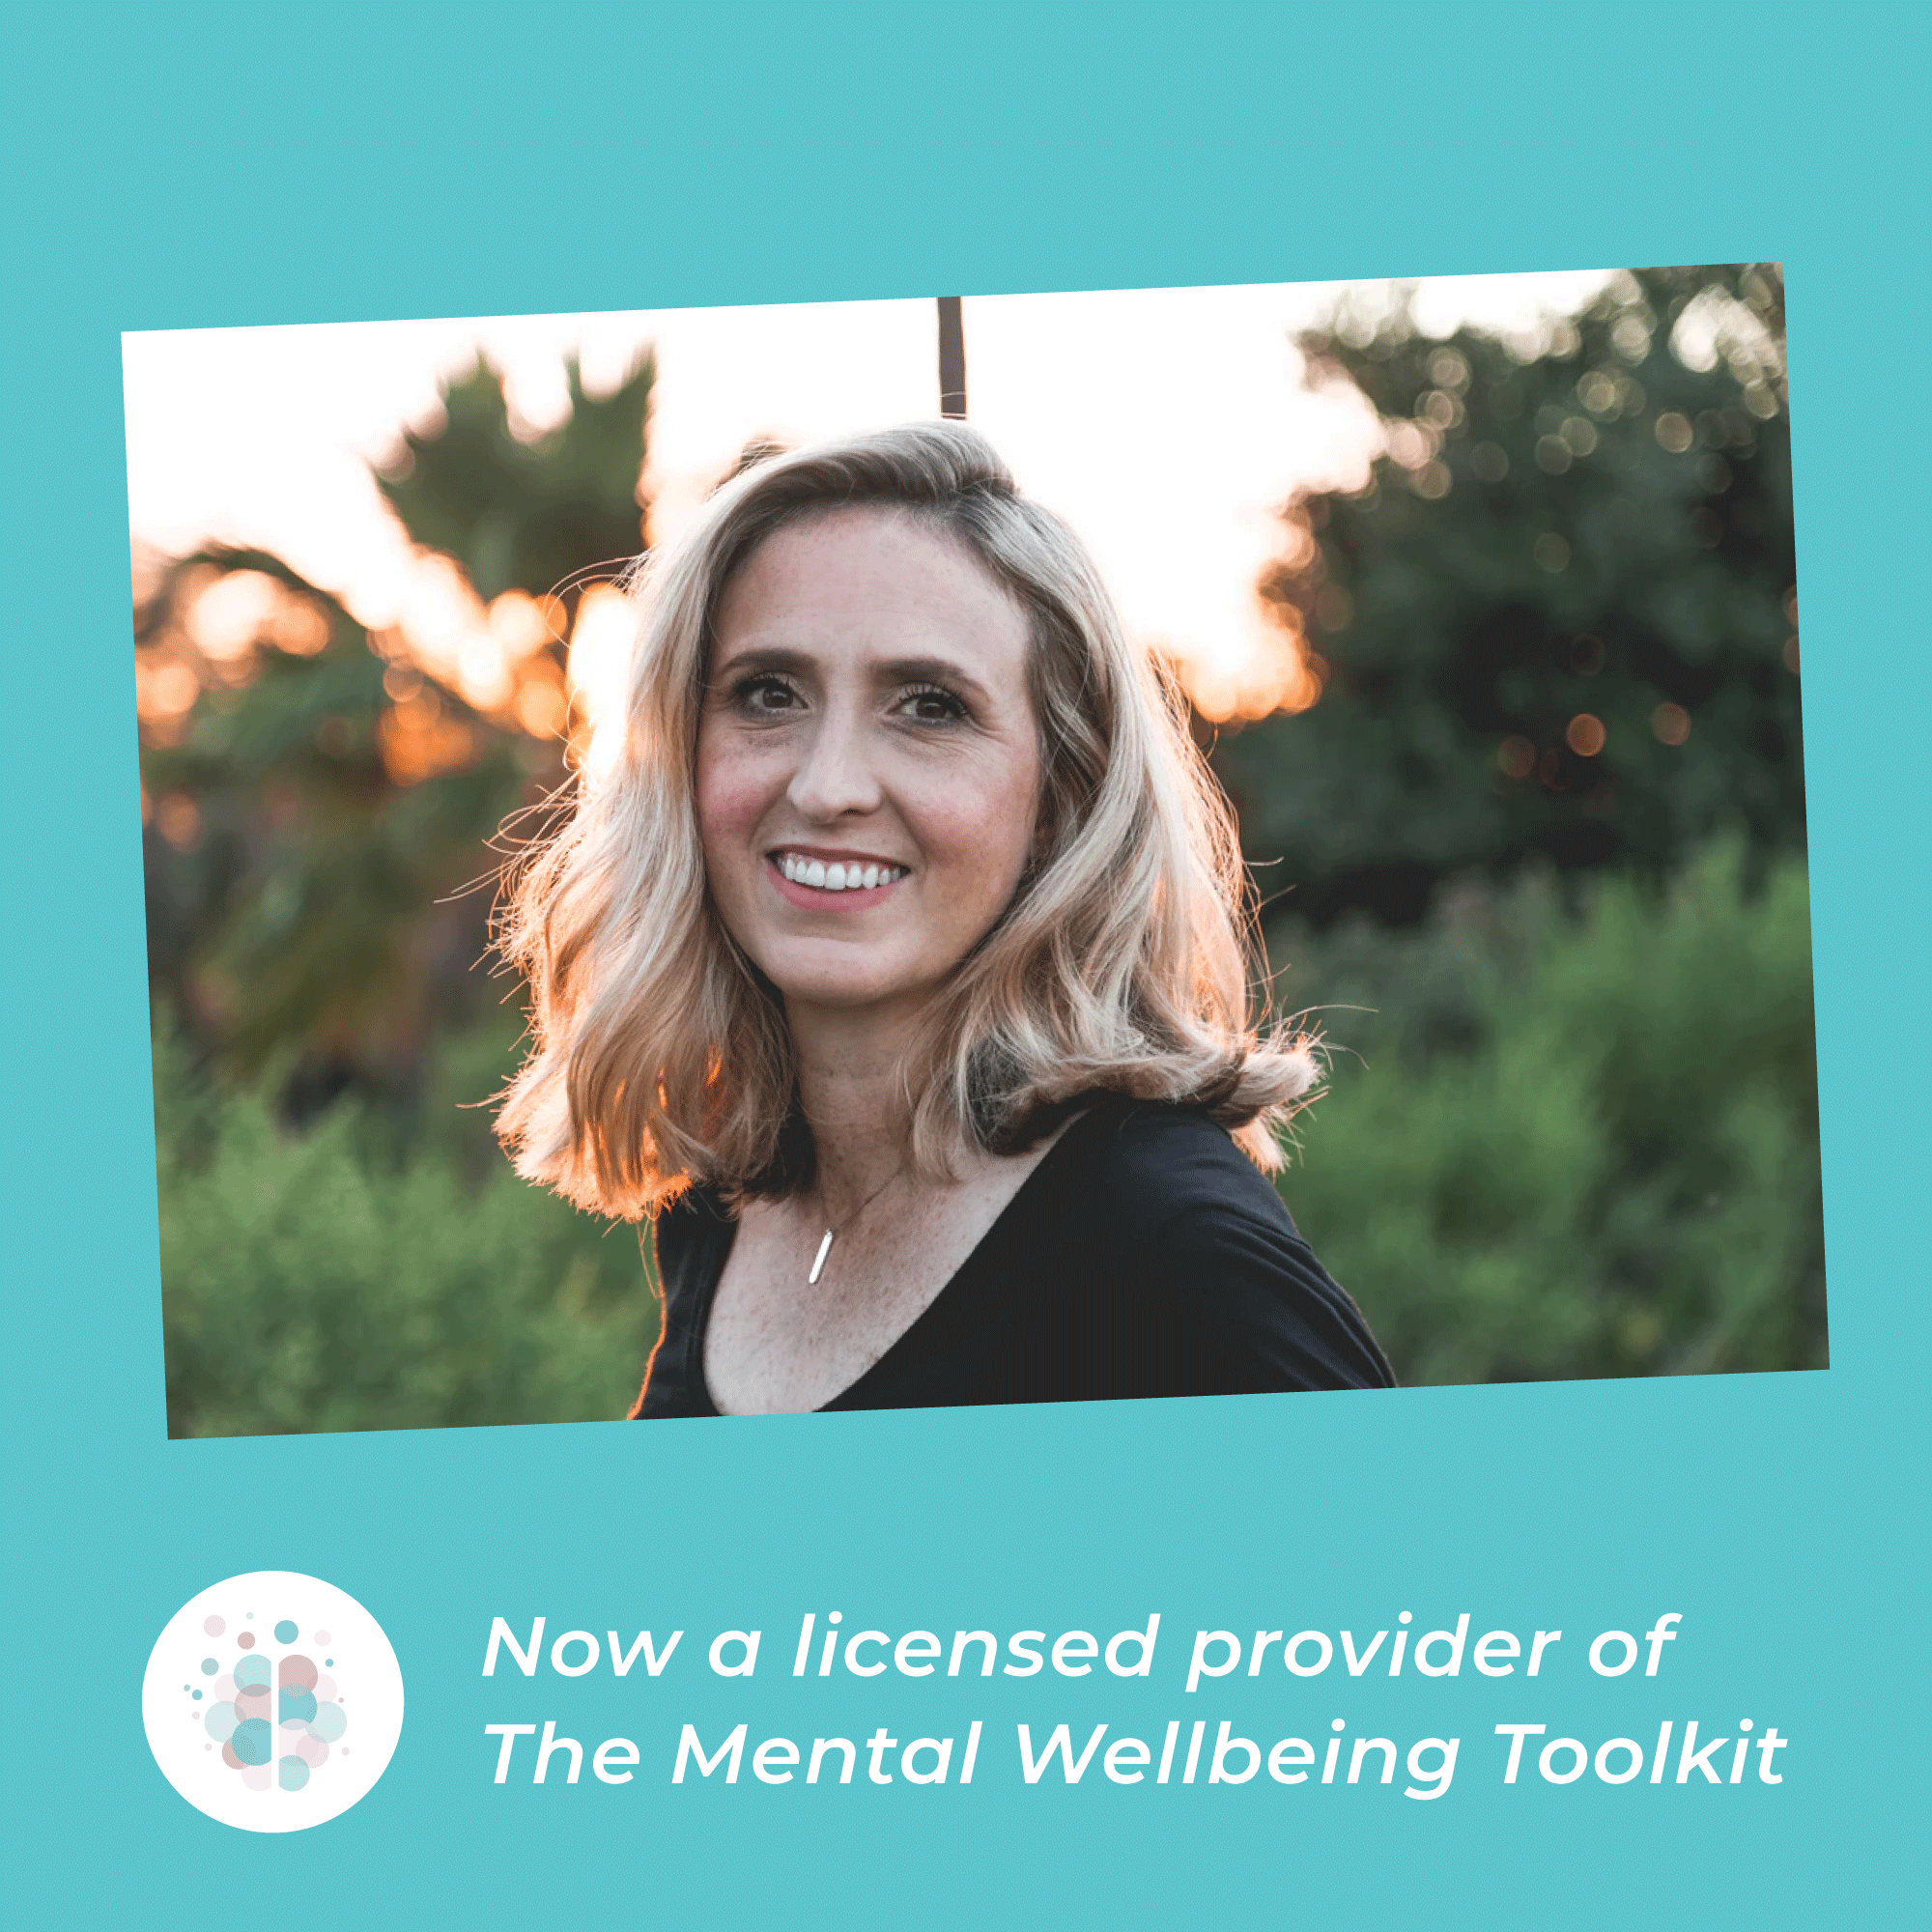 Mental Wellbeing Toolkit Licensed Provider